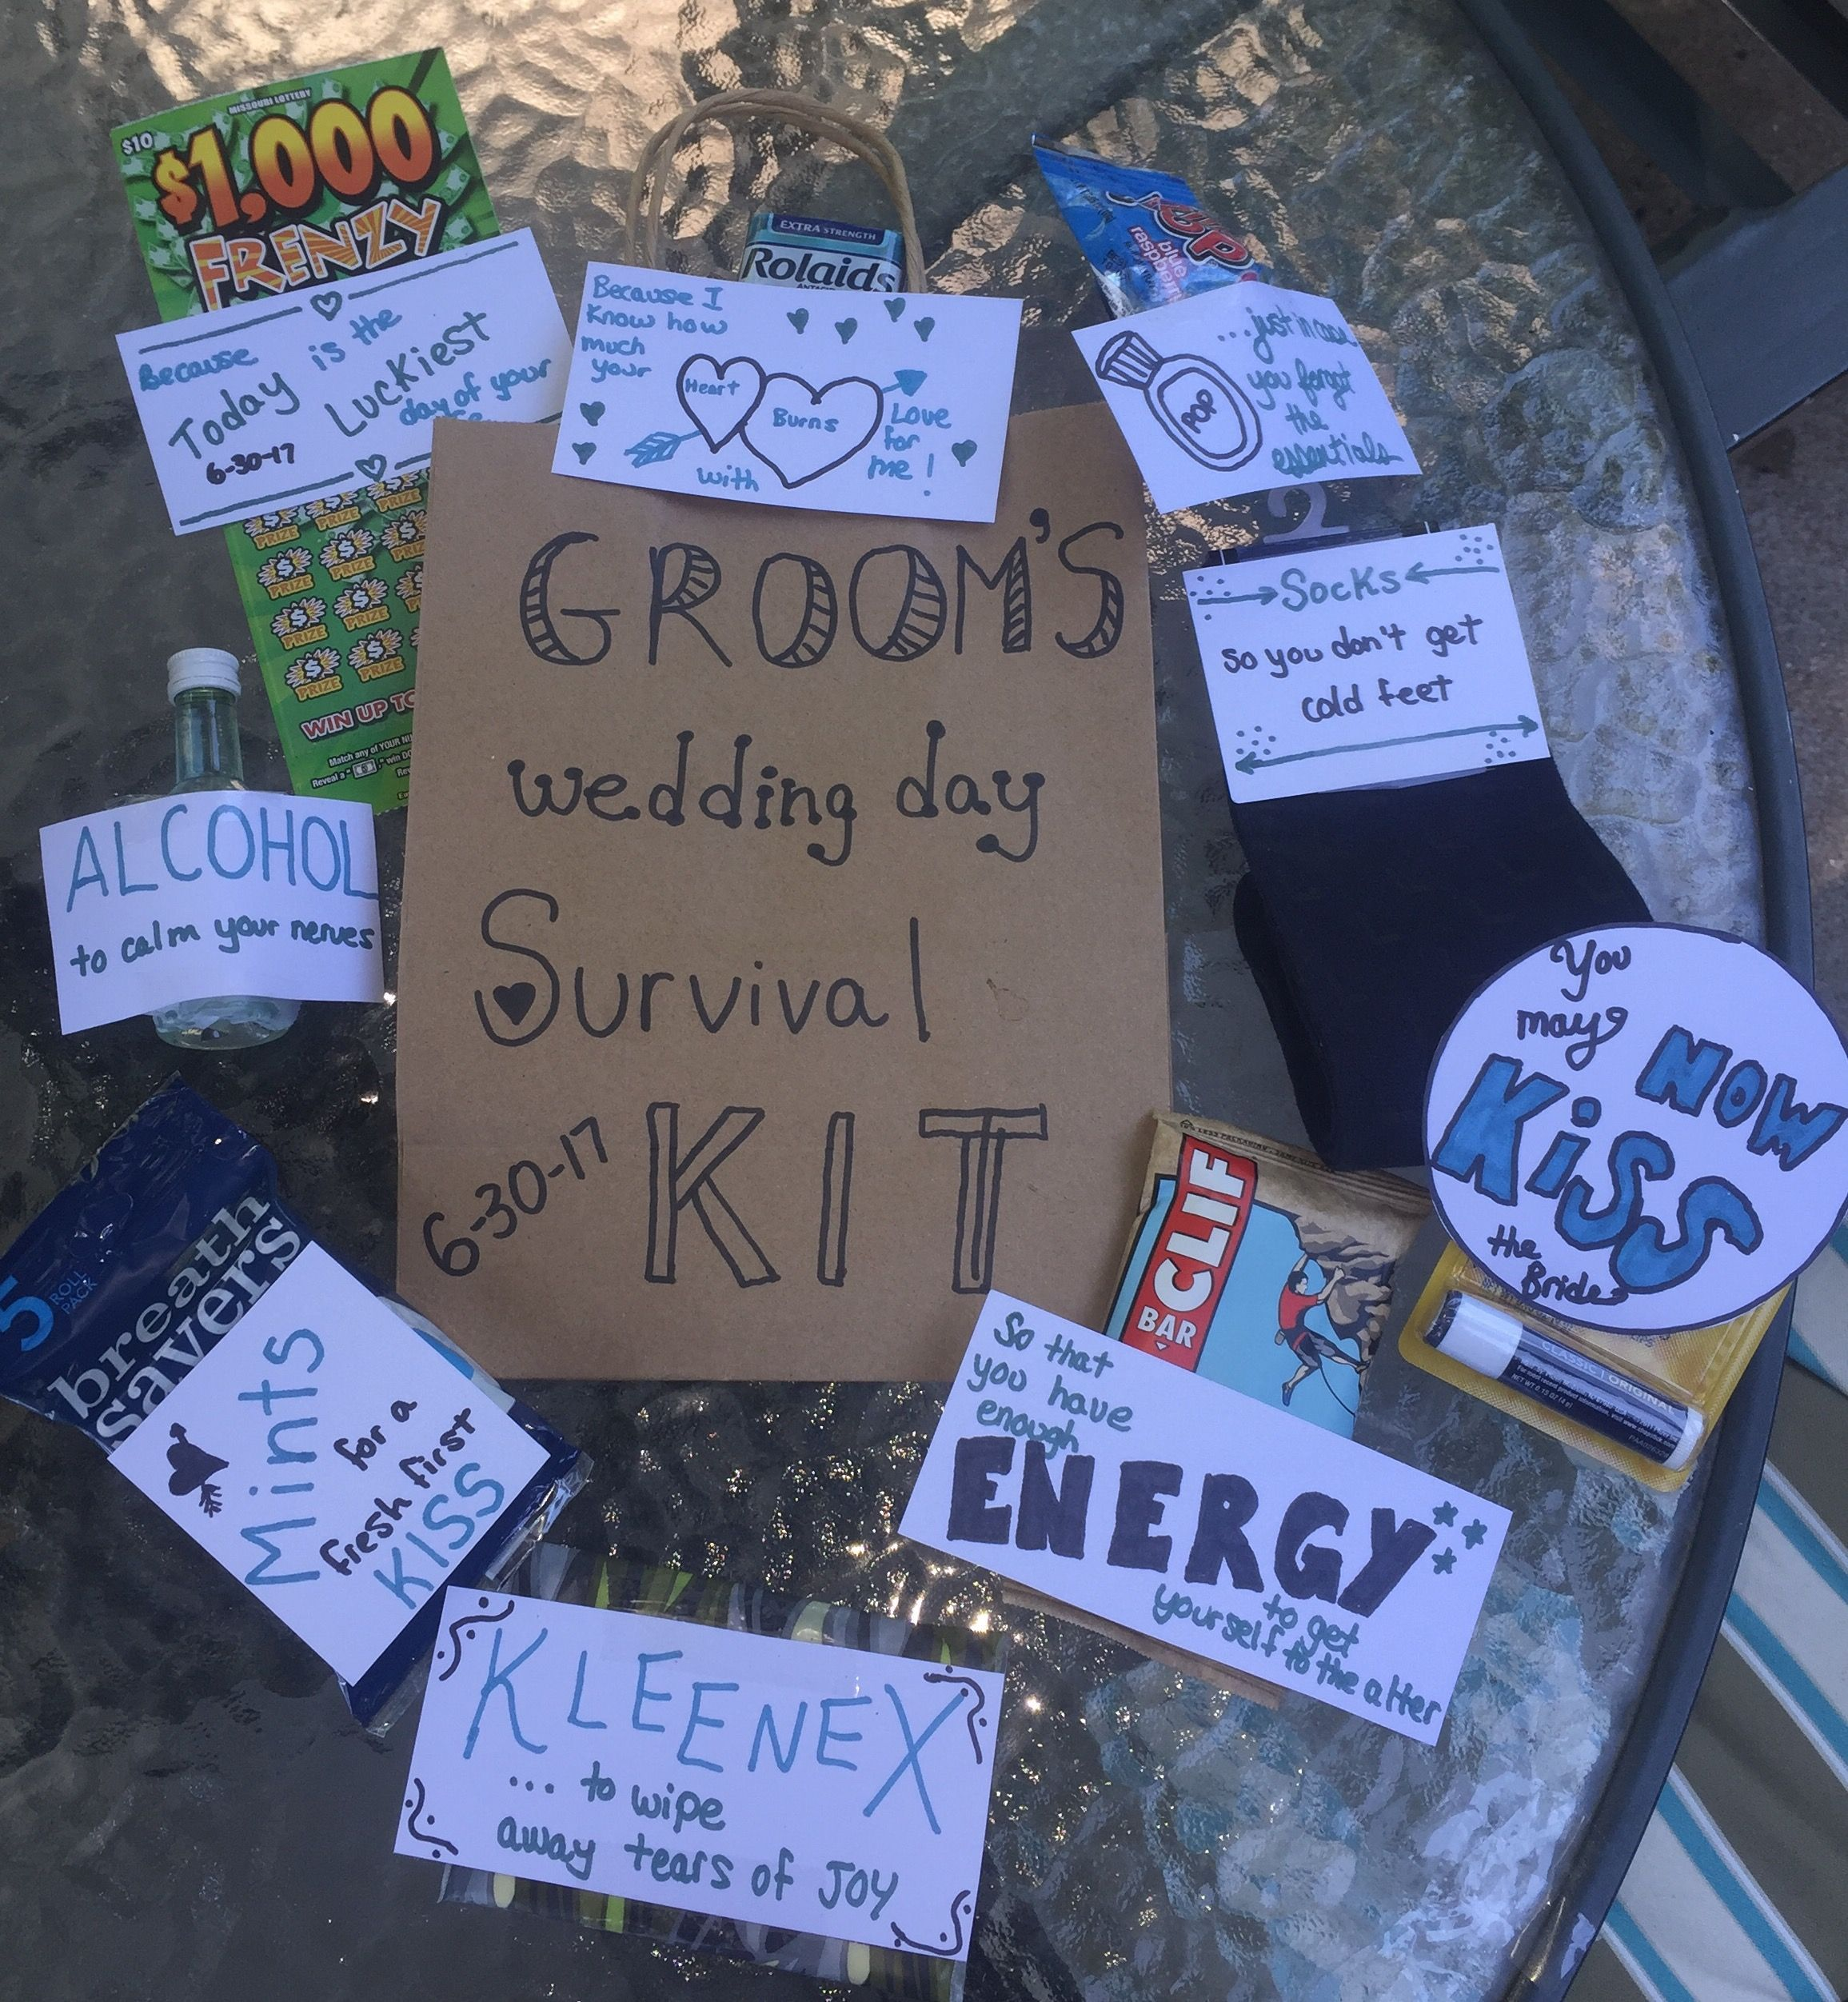 Groom's wedding day survival kit Wedding gifts for bride